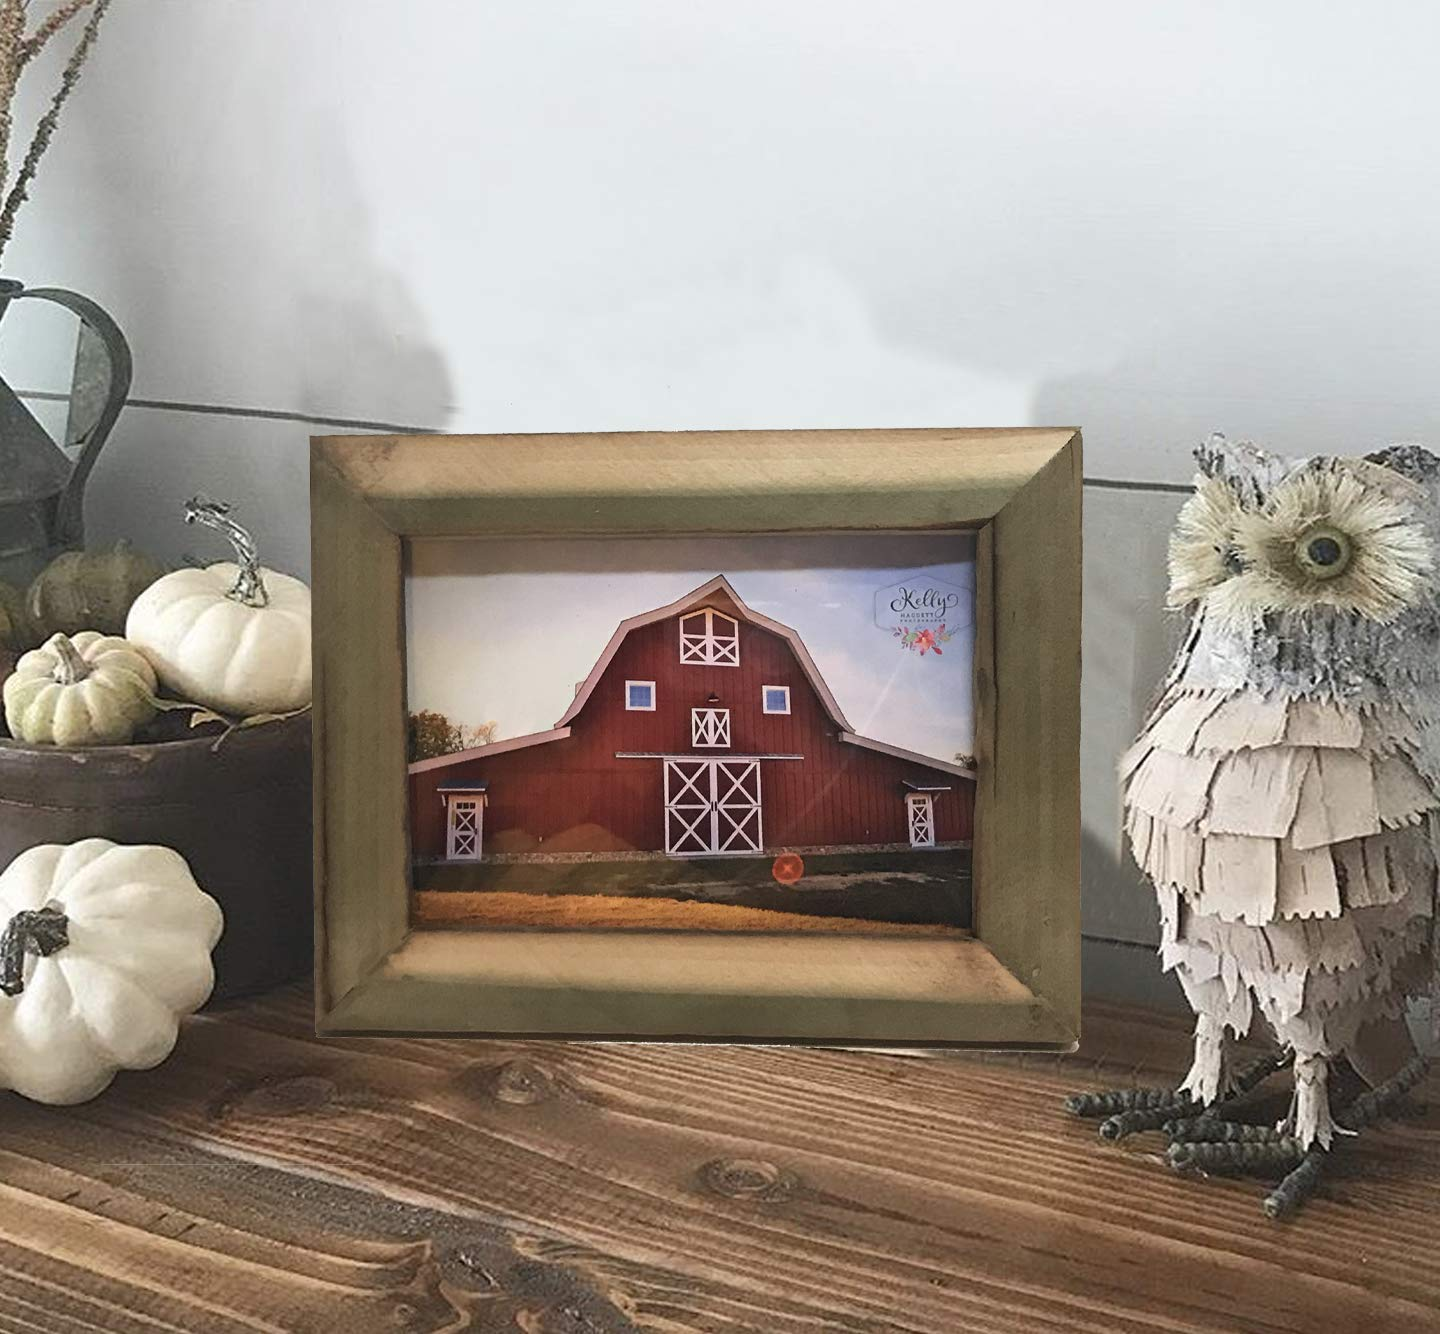 Reclaimed Poplar Wood Picture Frame. Wood Frame/Wood Picture Frame/Rustic Frame/Farmhouse Frame